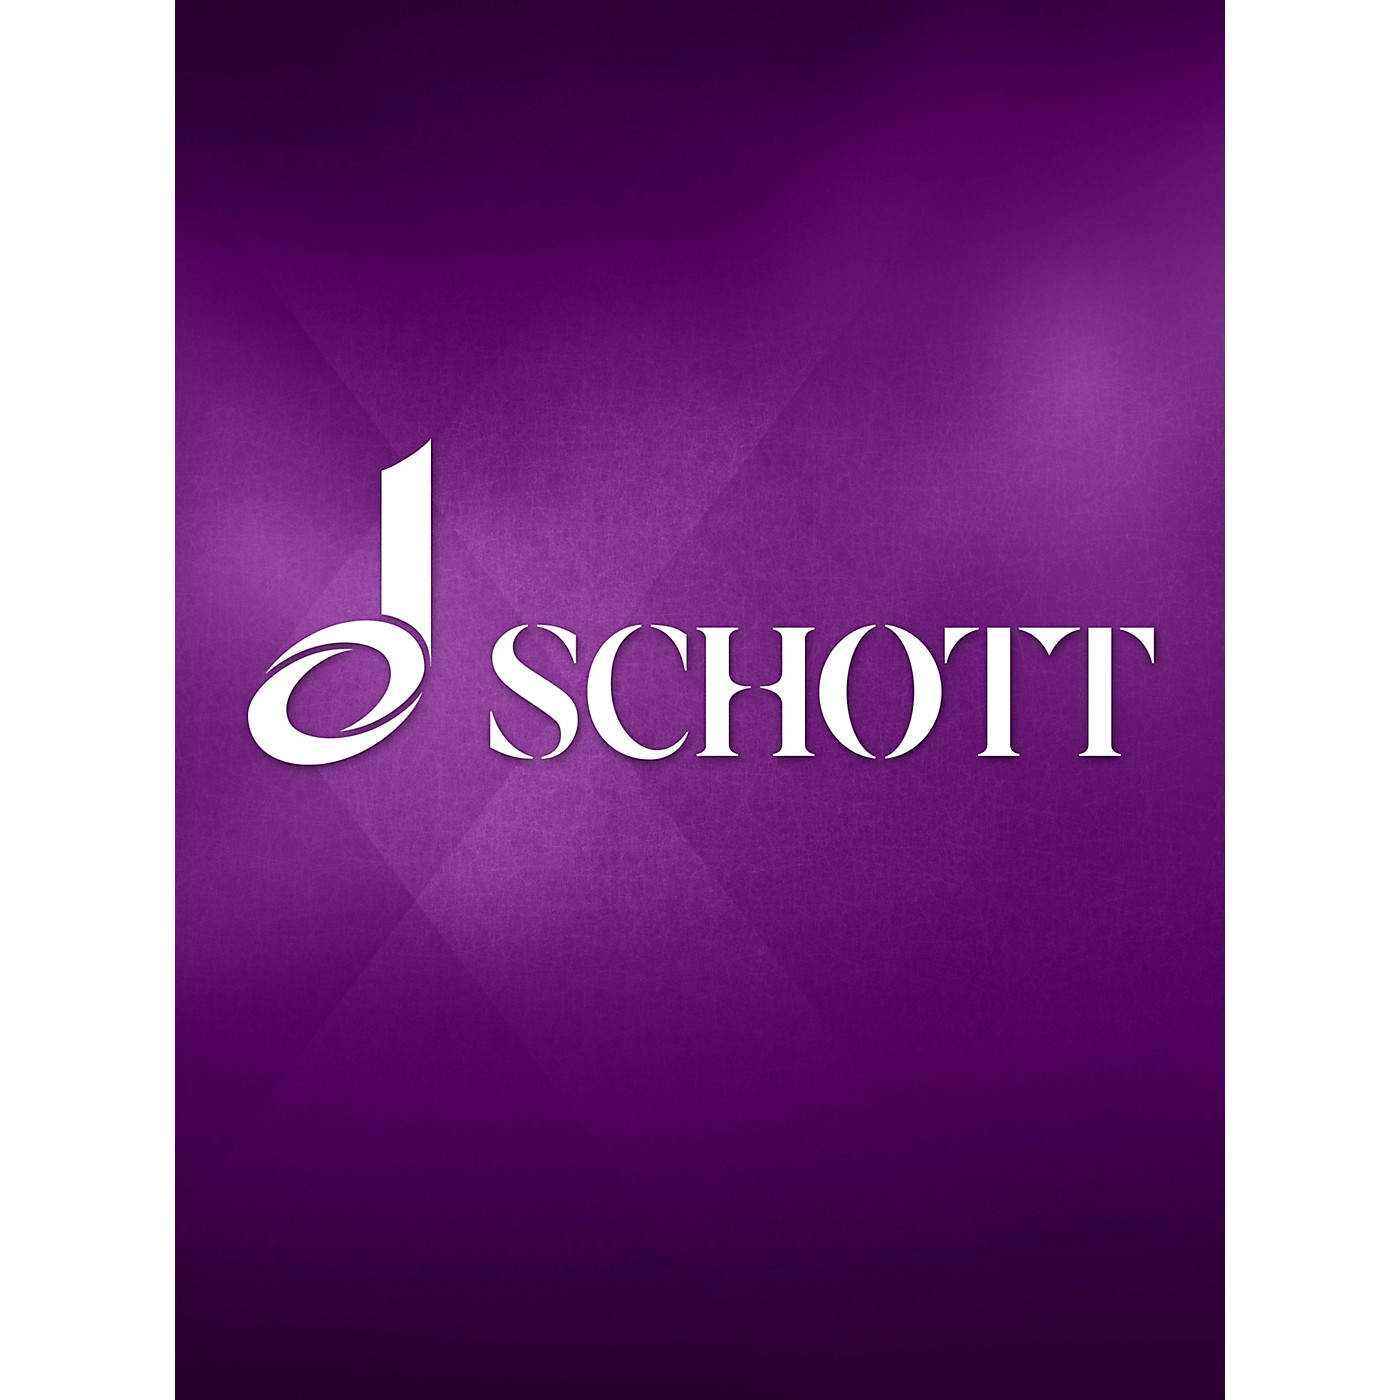 Schott Frau Musica (German Score) Composed by Paul Hindemith thumbnail